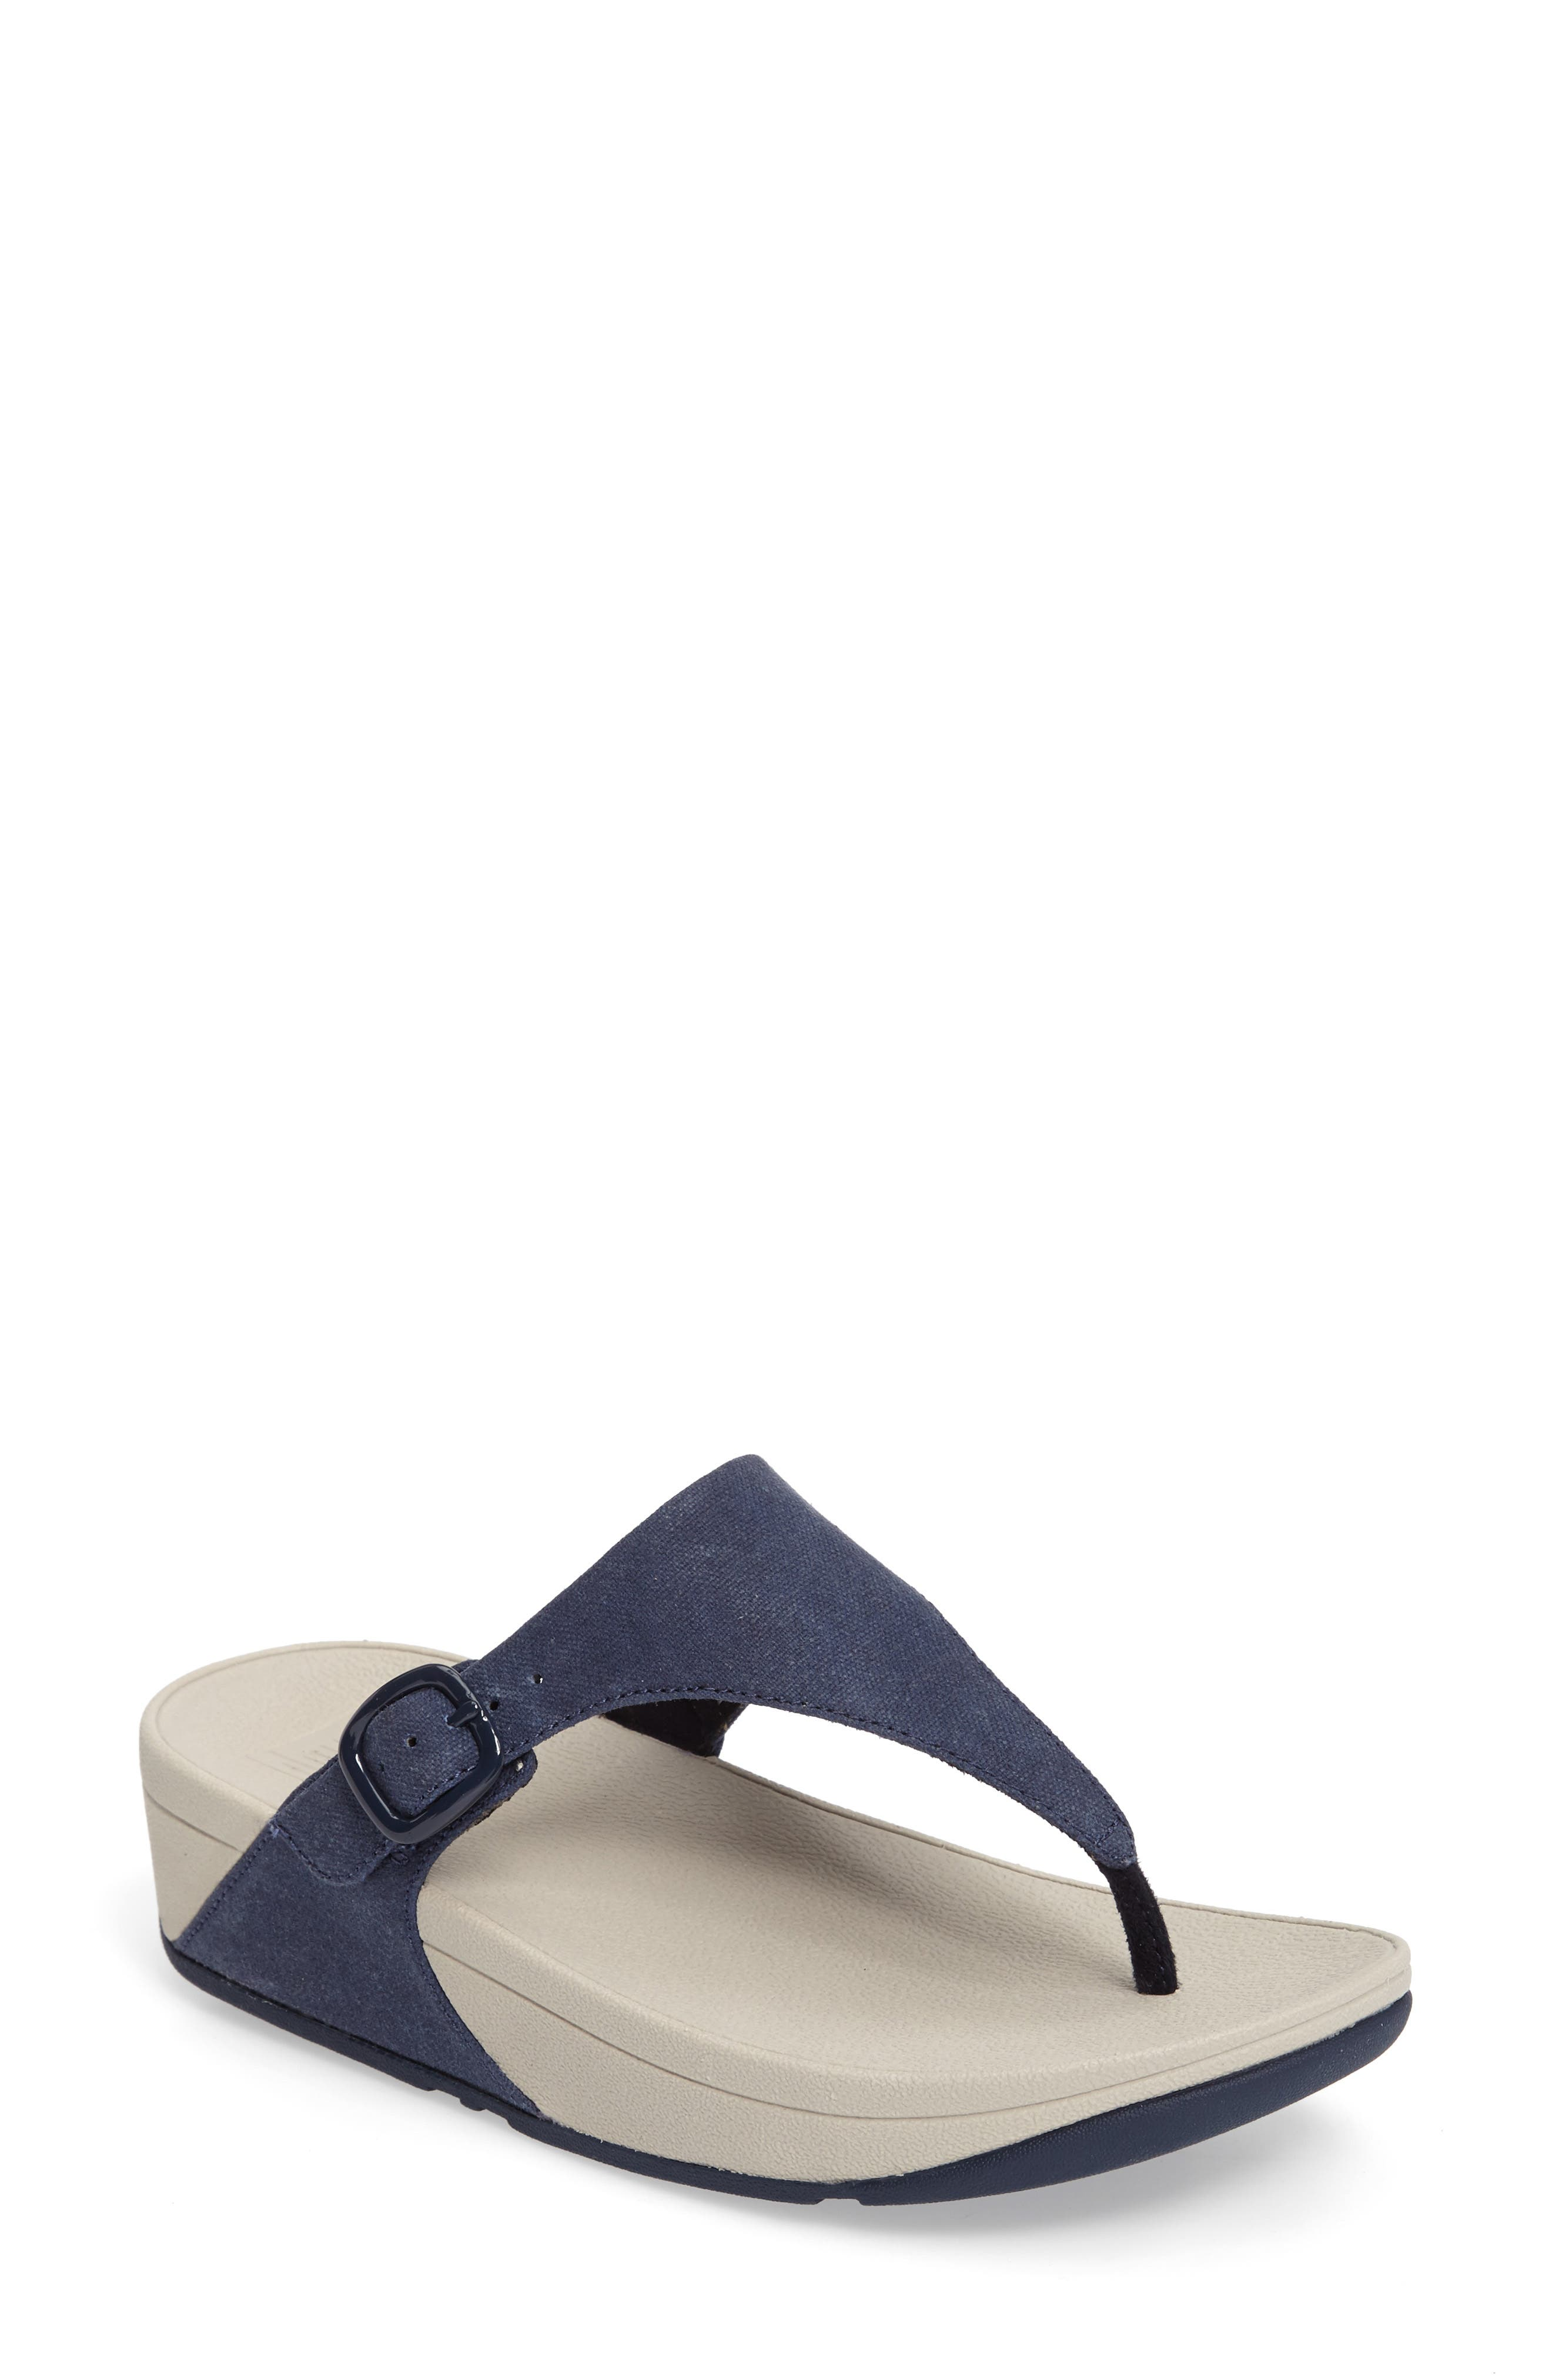 FitFlop 'The Skinny' Flip Flop (Women)